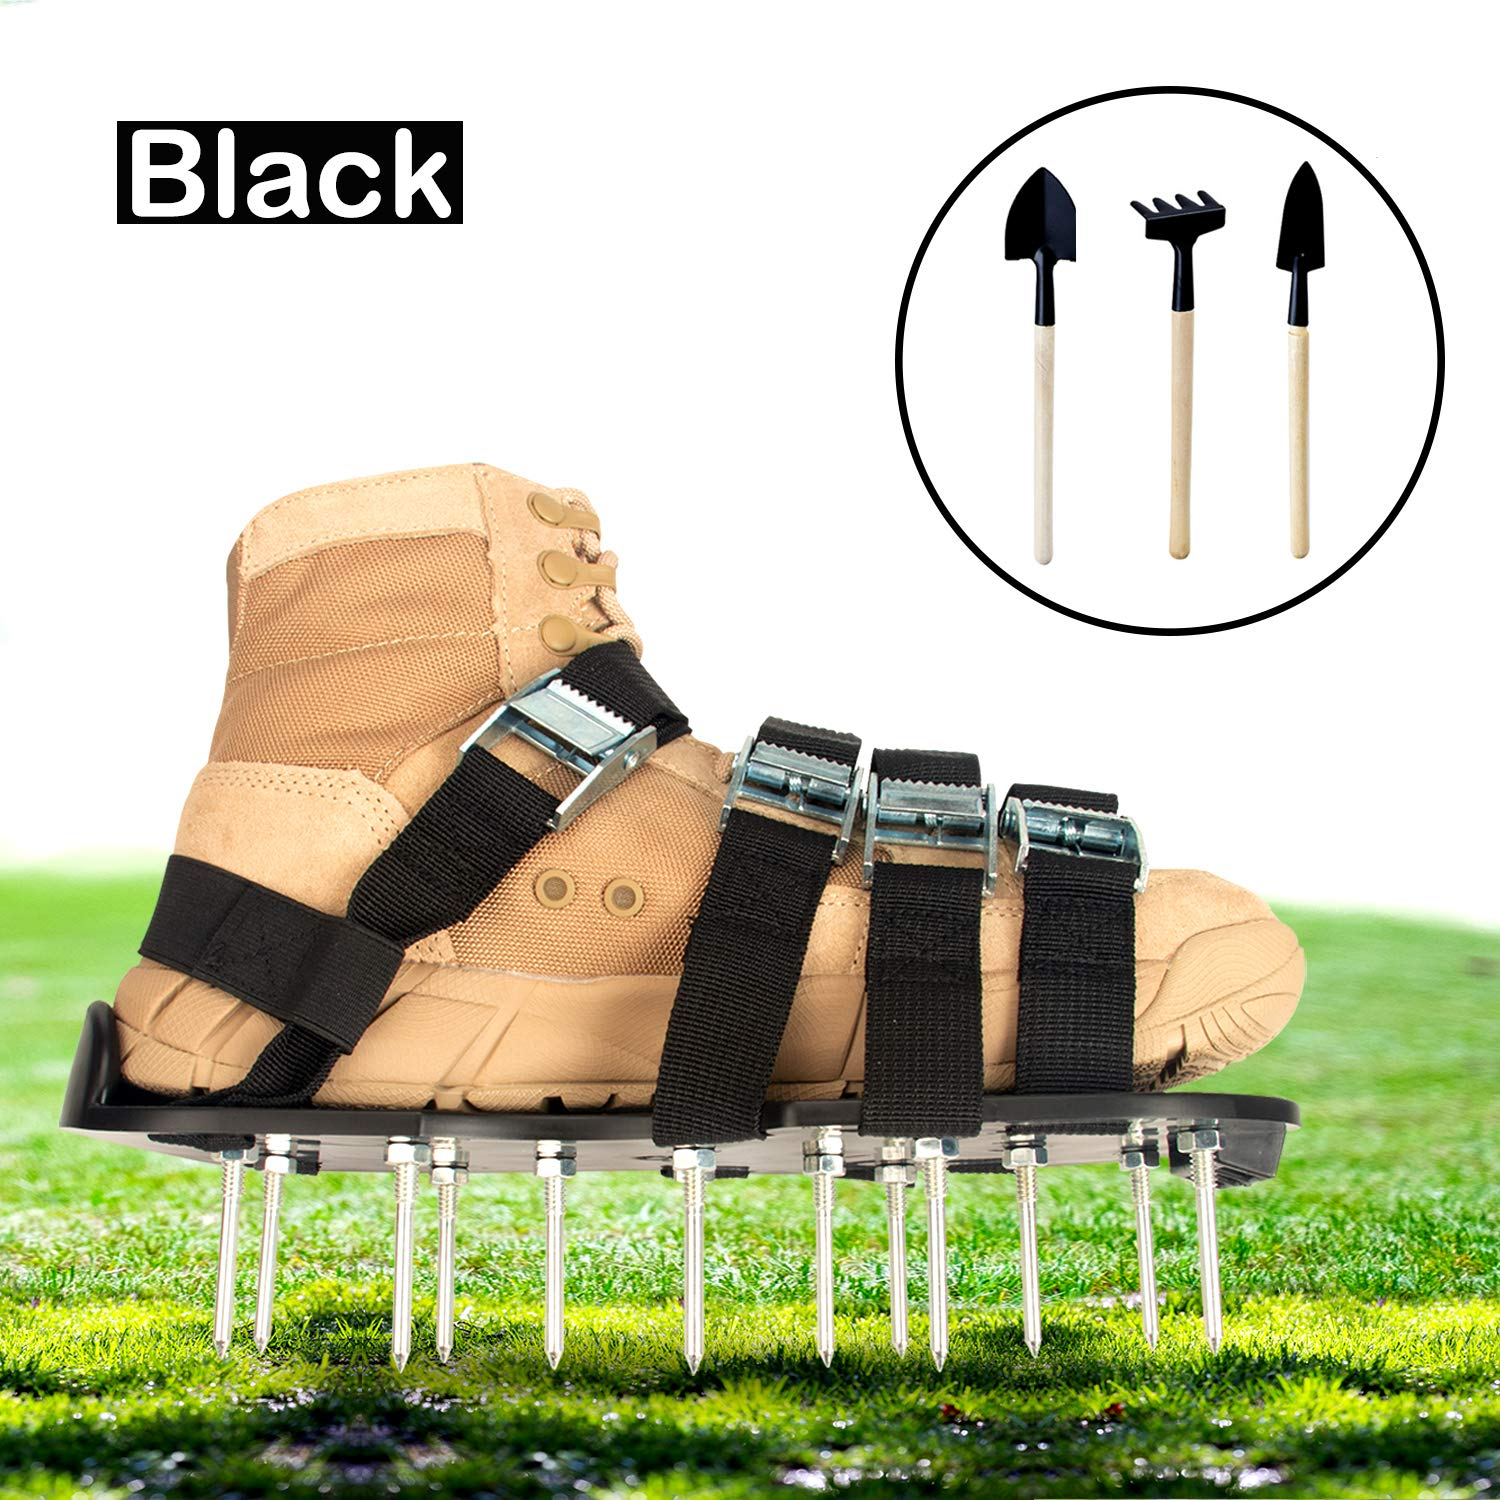 Goforbe Lawn Aerator Shoes, 4 Adjustable Straps Lawn aerating Shoes, Lawn Shoes for Women and Men Heavy Duty, Aerating Your Yard, Lawn, Roots & Grass (Black) by Goforbe